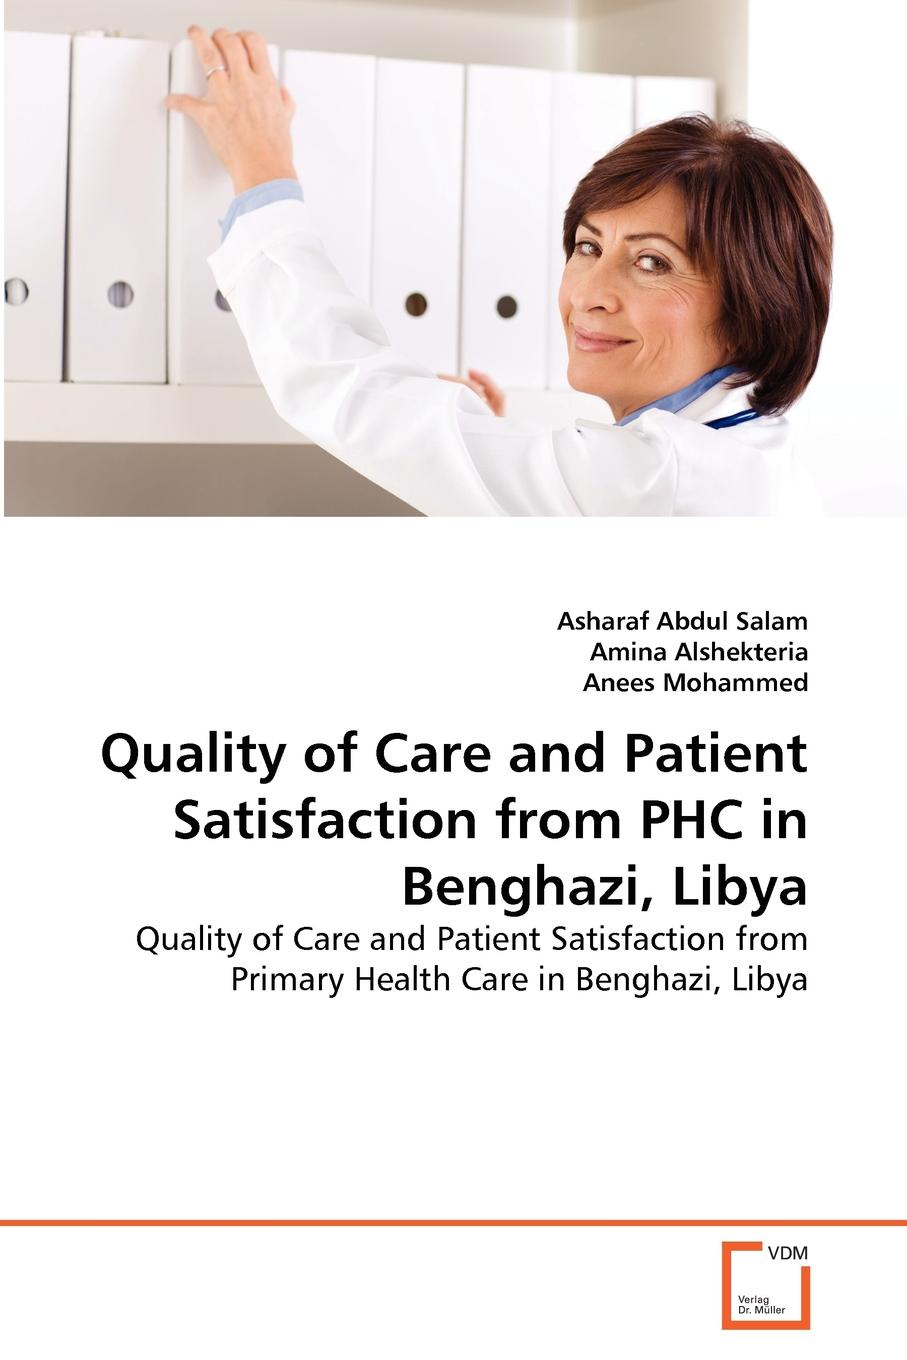 Asharaf Abdul Salam, Amina Alshekteria, Anees Mohammed Quality of Care and Patient Satisfaction from PHC in Benghazi, Libya цены